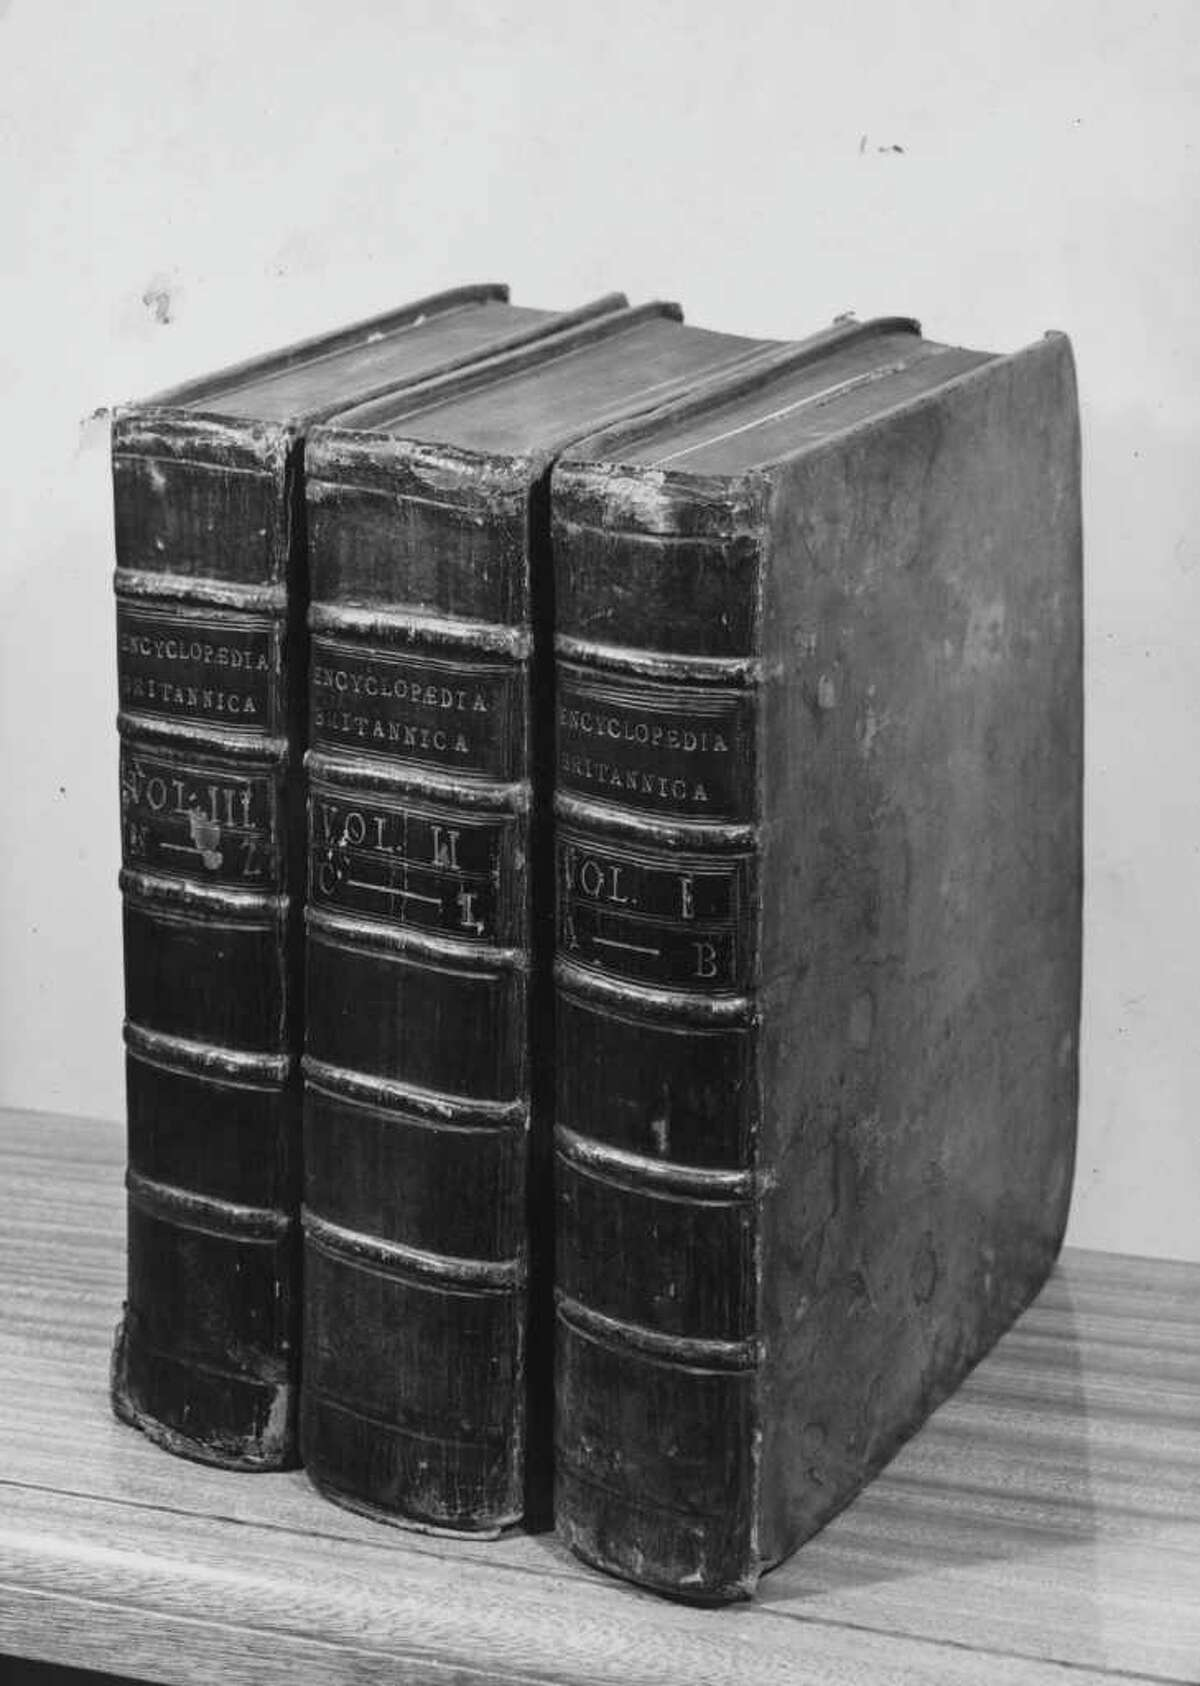 The first edition of the Encyclopaedia Britannica, in three volumes, photographed in 1946. With only 4,000 sets left, Encyclopaedia Britannica President Jorge Cauz said the final print run will be as rare as the first edition, McClatchy reported.